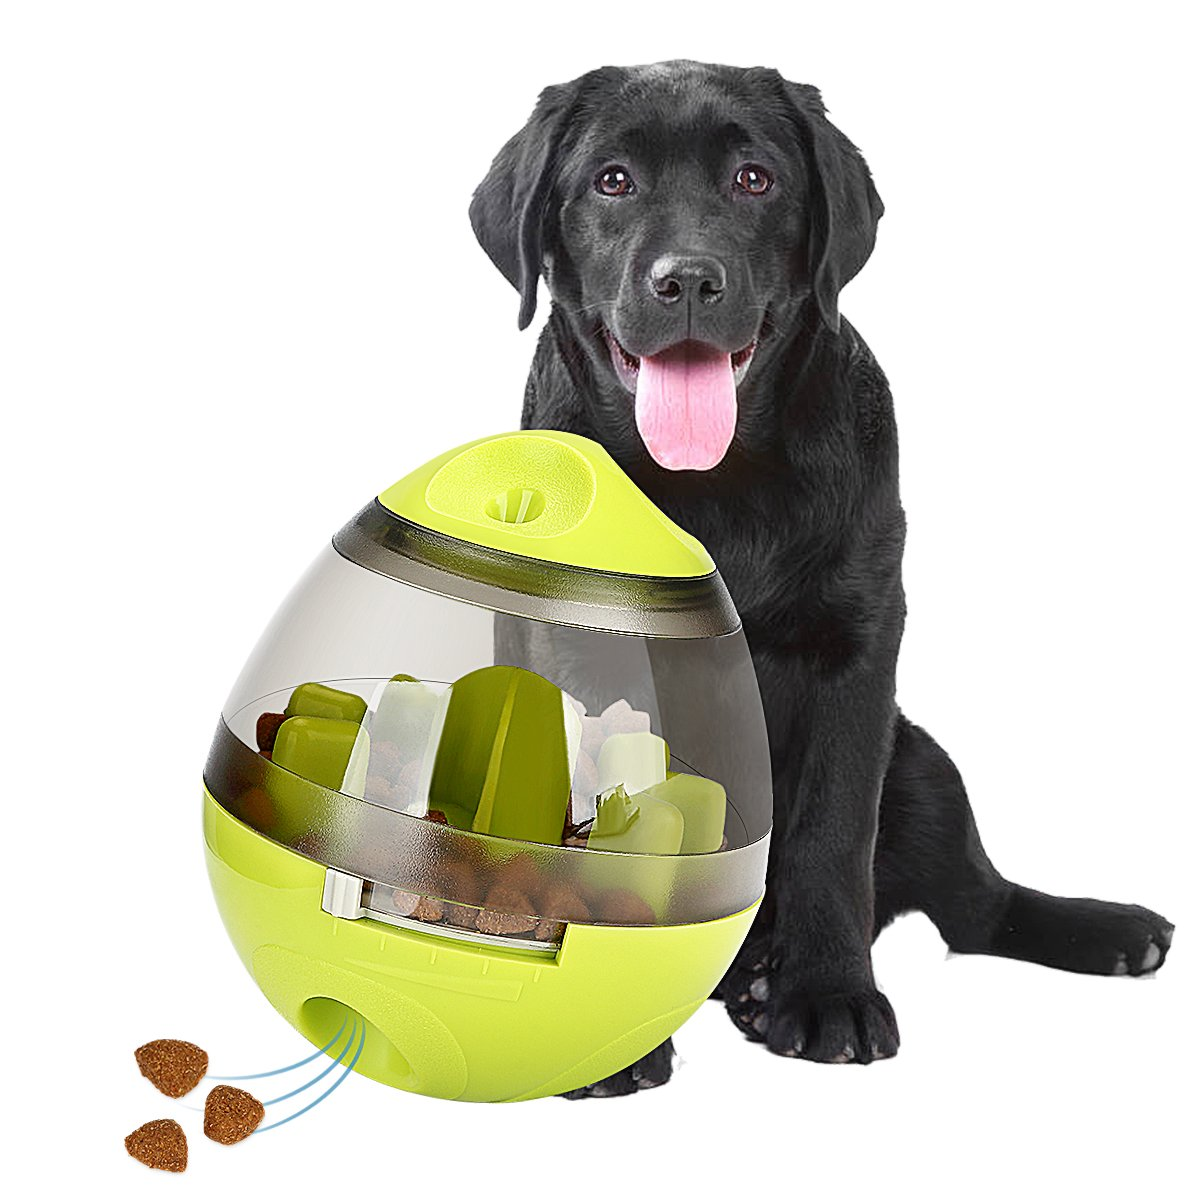 STAJOY Treat Ball Dog Toy, Food Dispensing Ball Interactive Treat-Tumbler Design for Dogs & Cats: Increases IQ and Mental Stimulation (green)